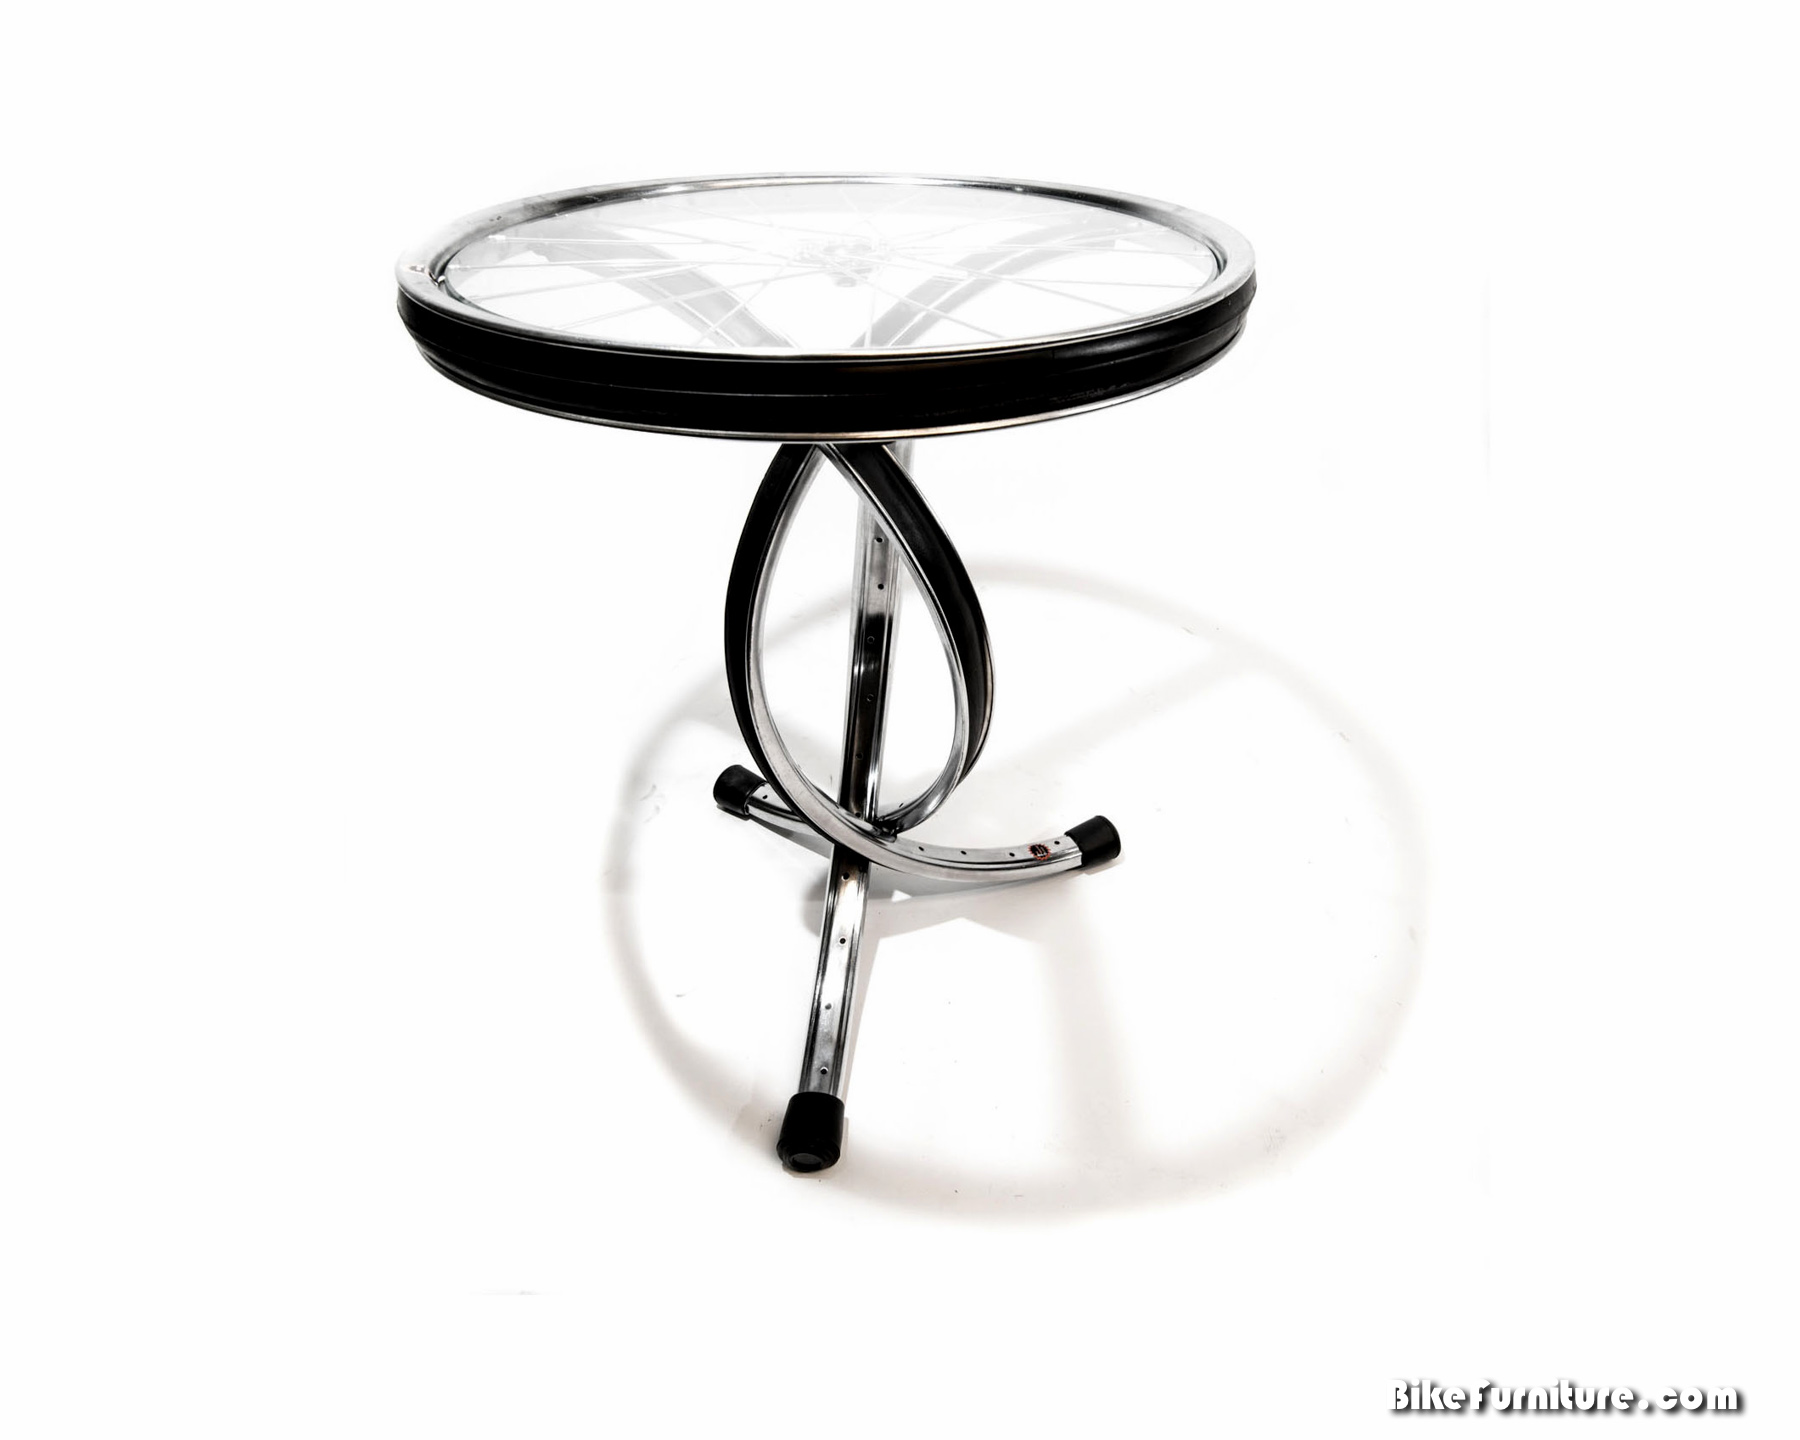 bike-trophy-table-2116-5661.jpg